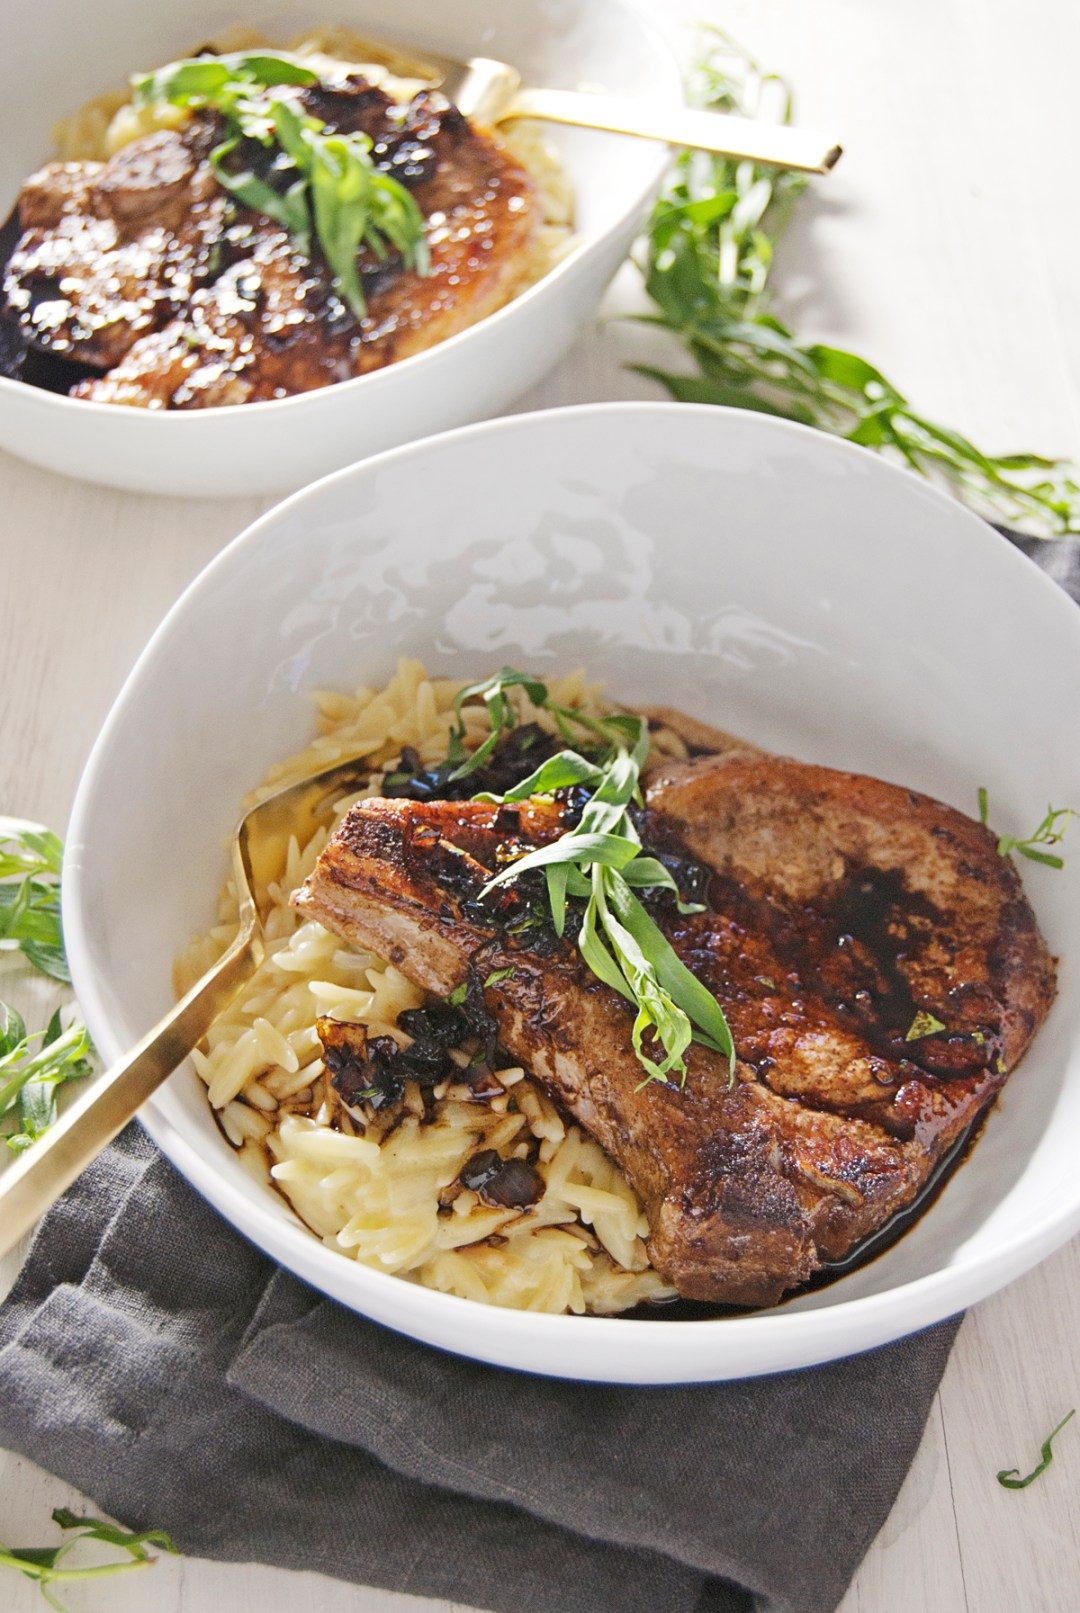 These seared pork chops are heavenly when paired with tangy balsamic glaze, fresh tarragon, and cheesy orzo.